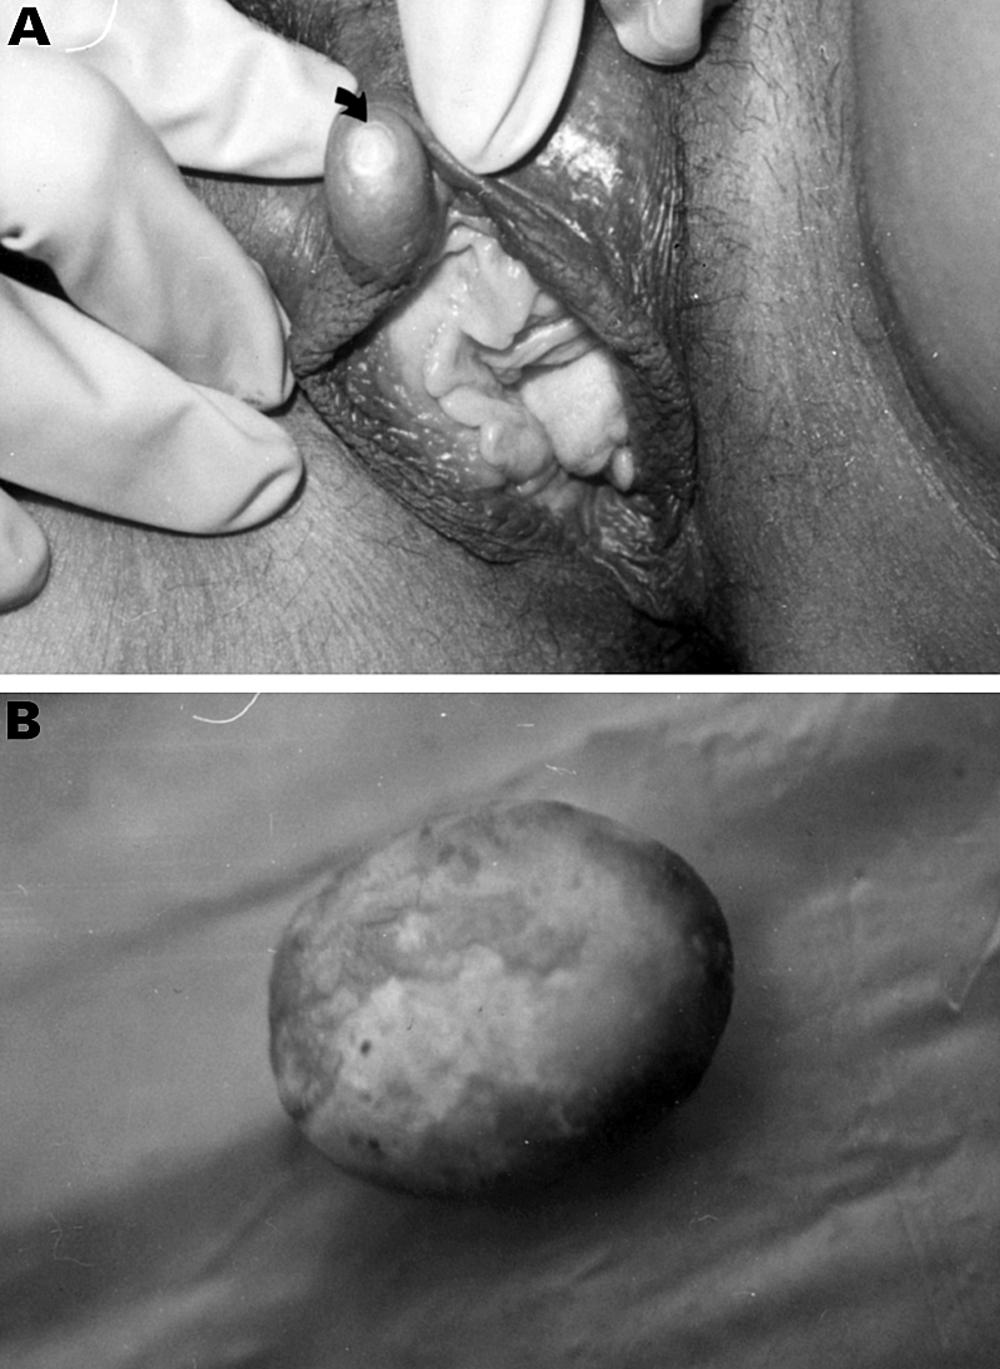 """A """"stone"""" in the vulva 